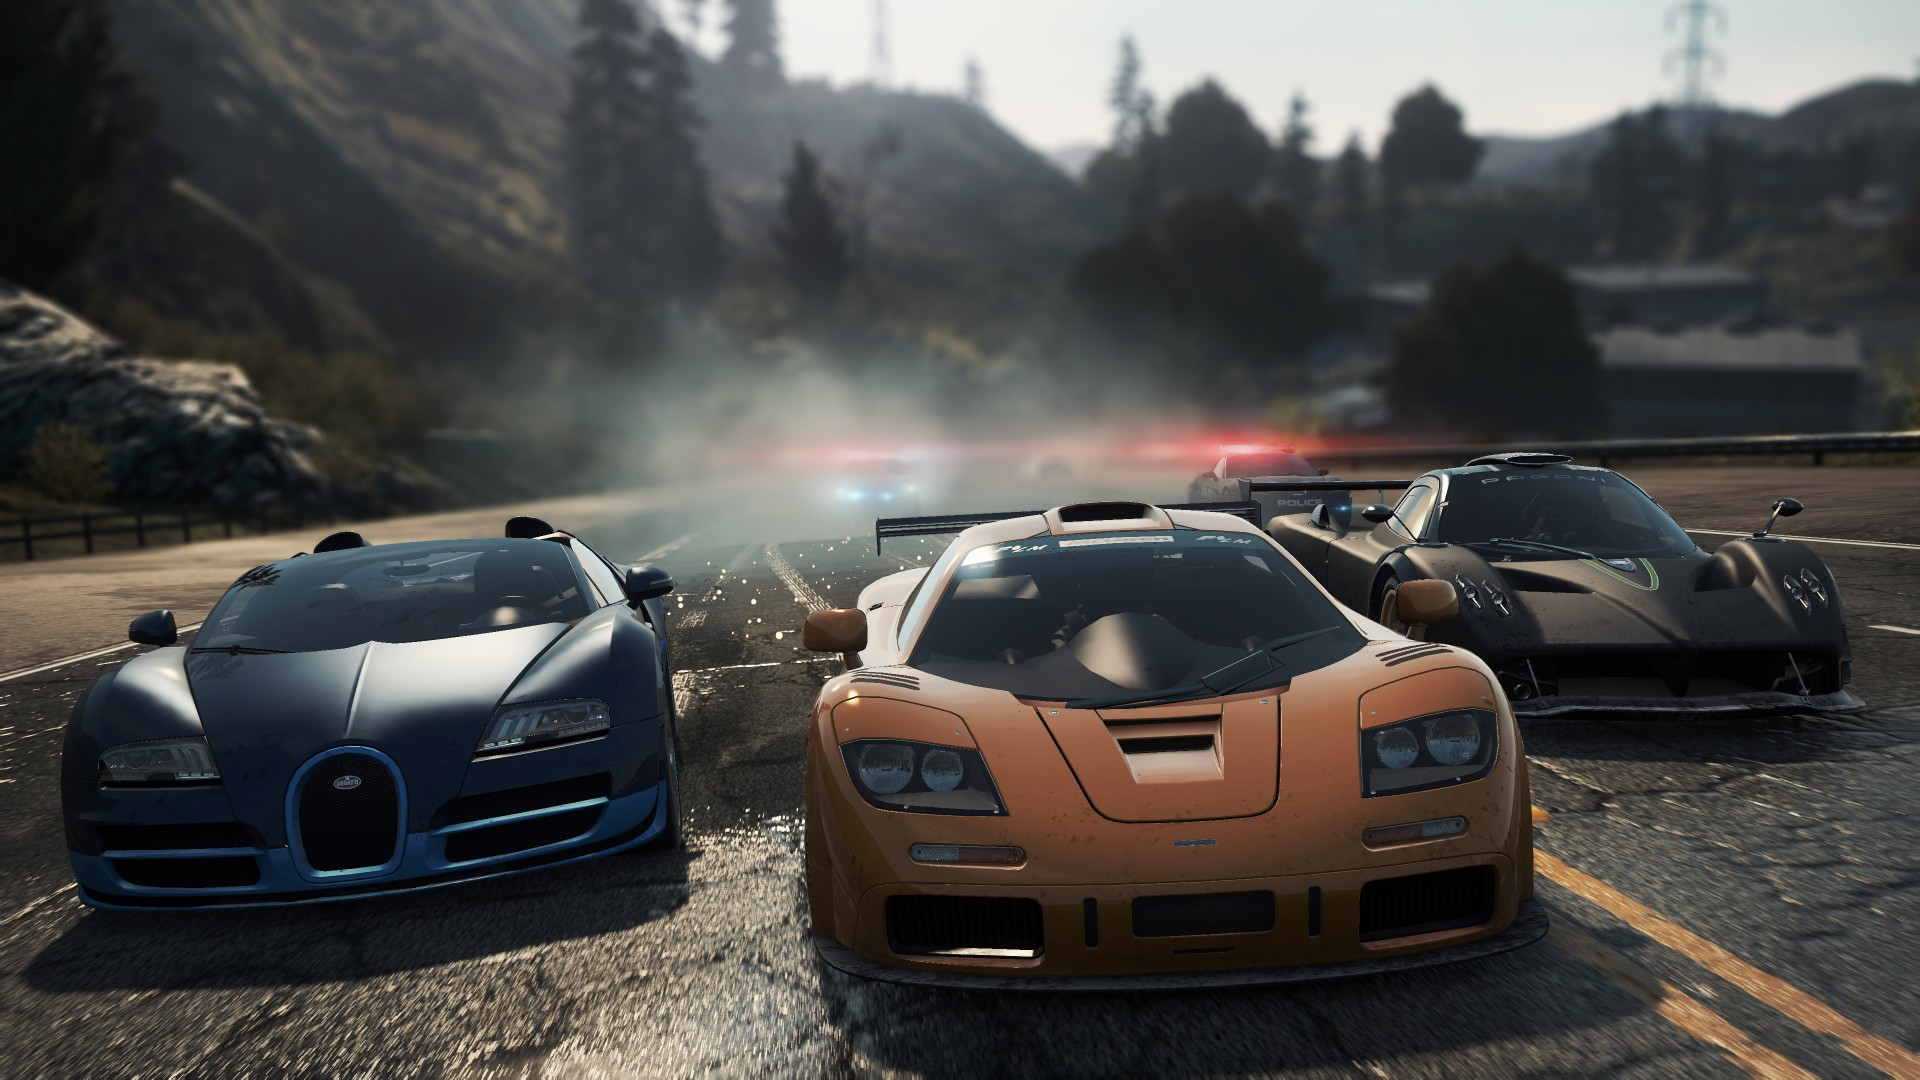 SGGAMINGINFO » Feel the speed with NFS: Most Wanted ...